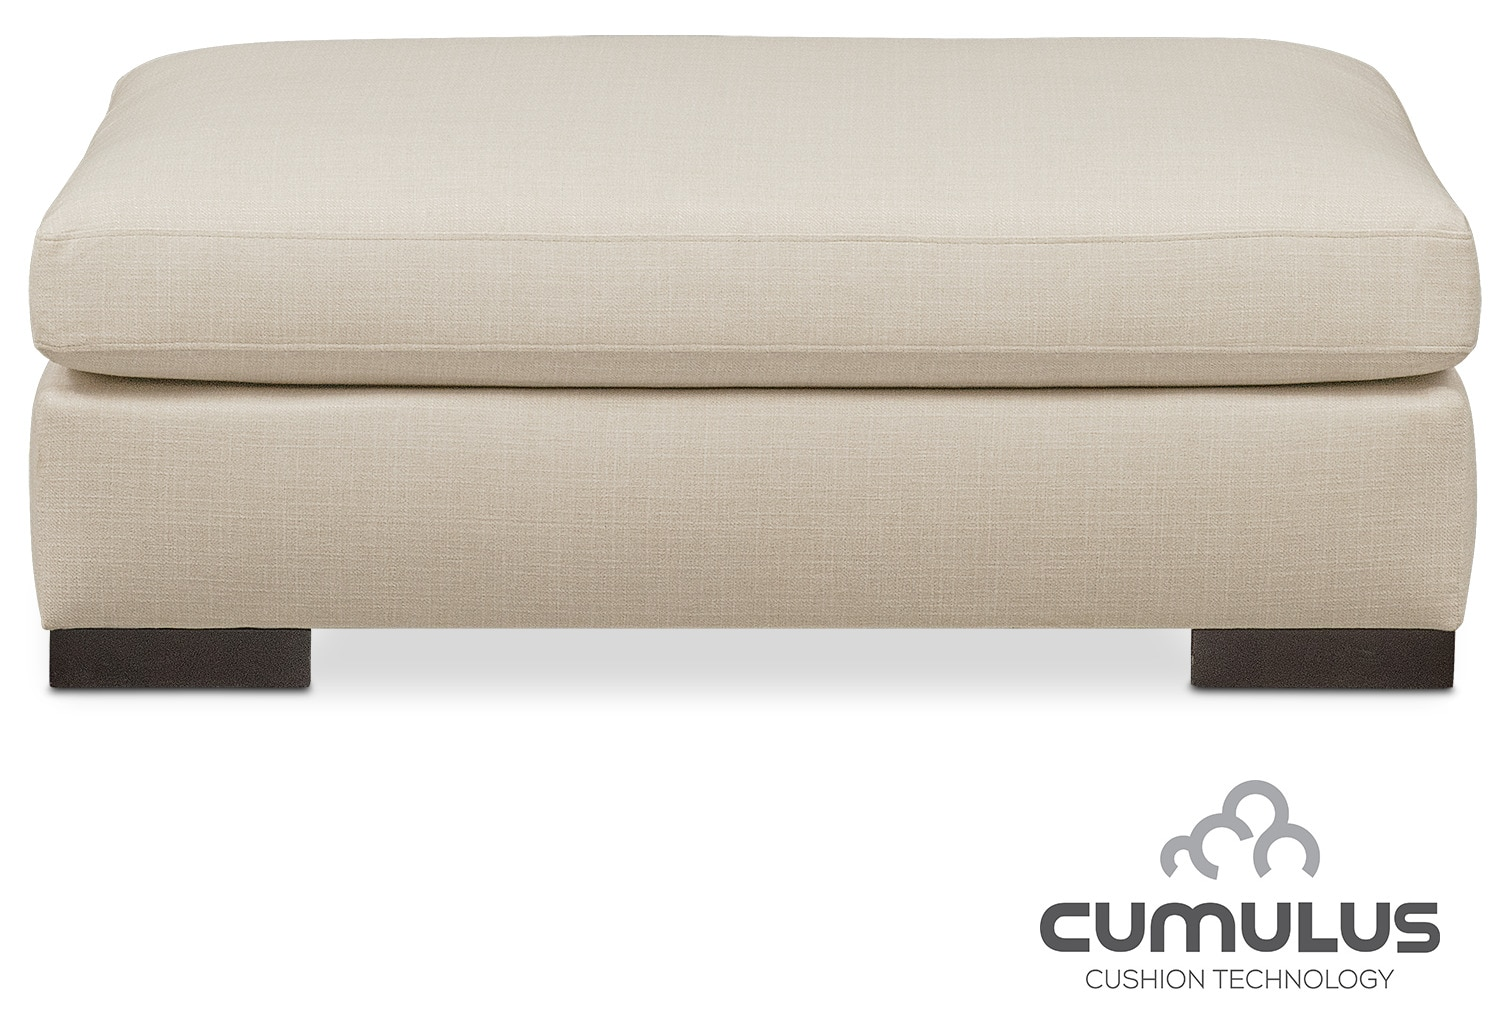 Living Room Furniture - Ethan Cumulus Ottoman - Cream